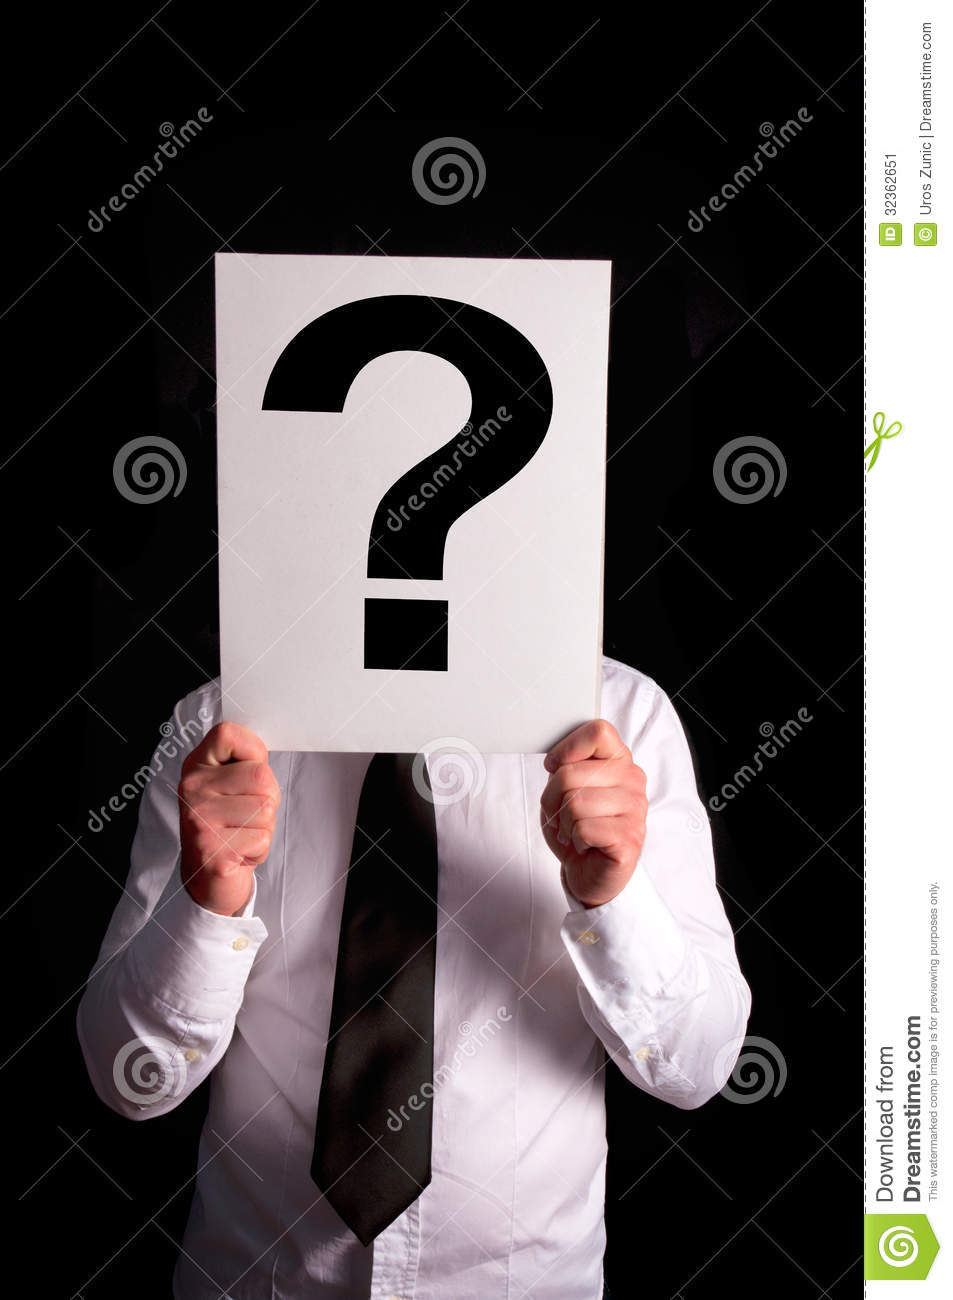 Question Mark Stock Image - Image: 32362651